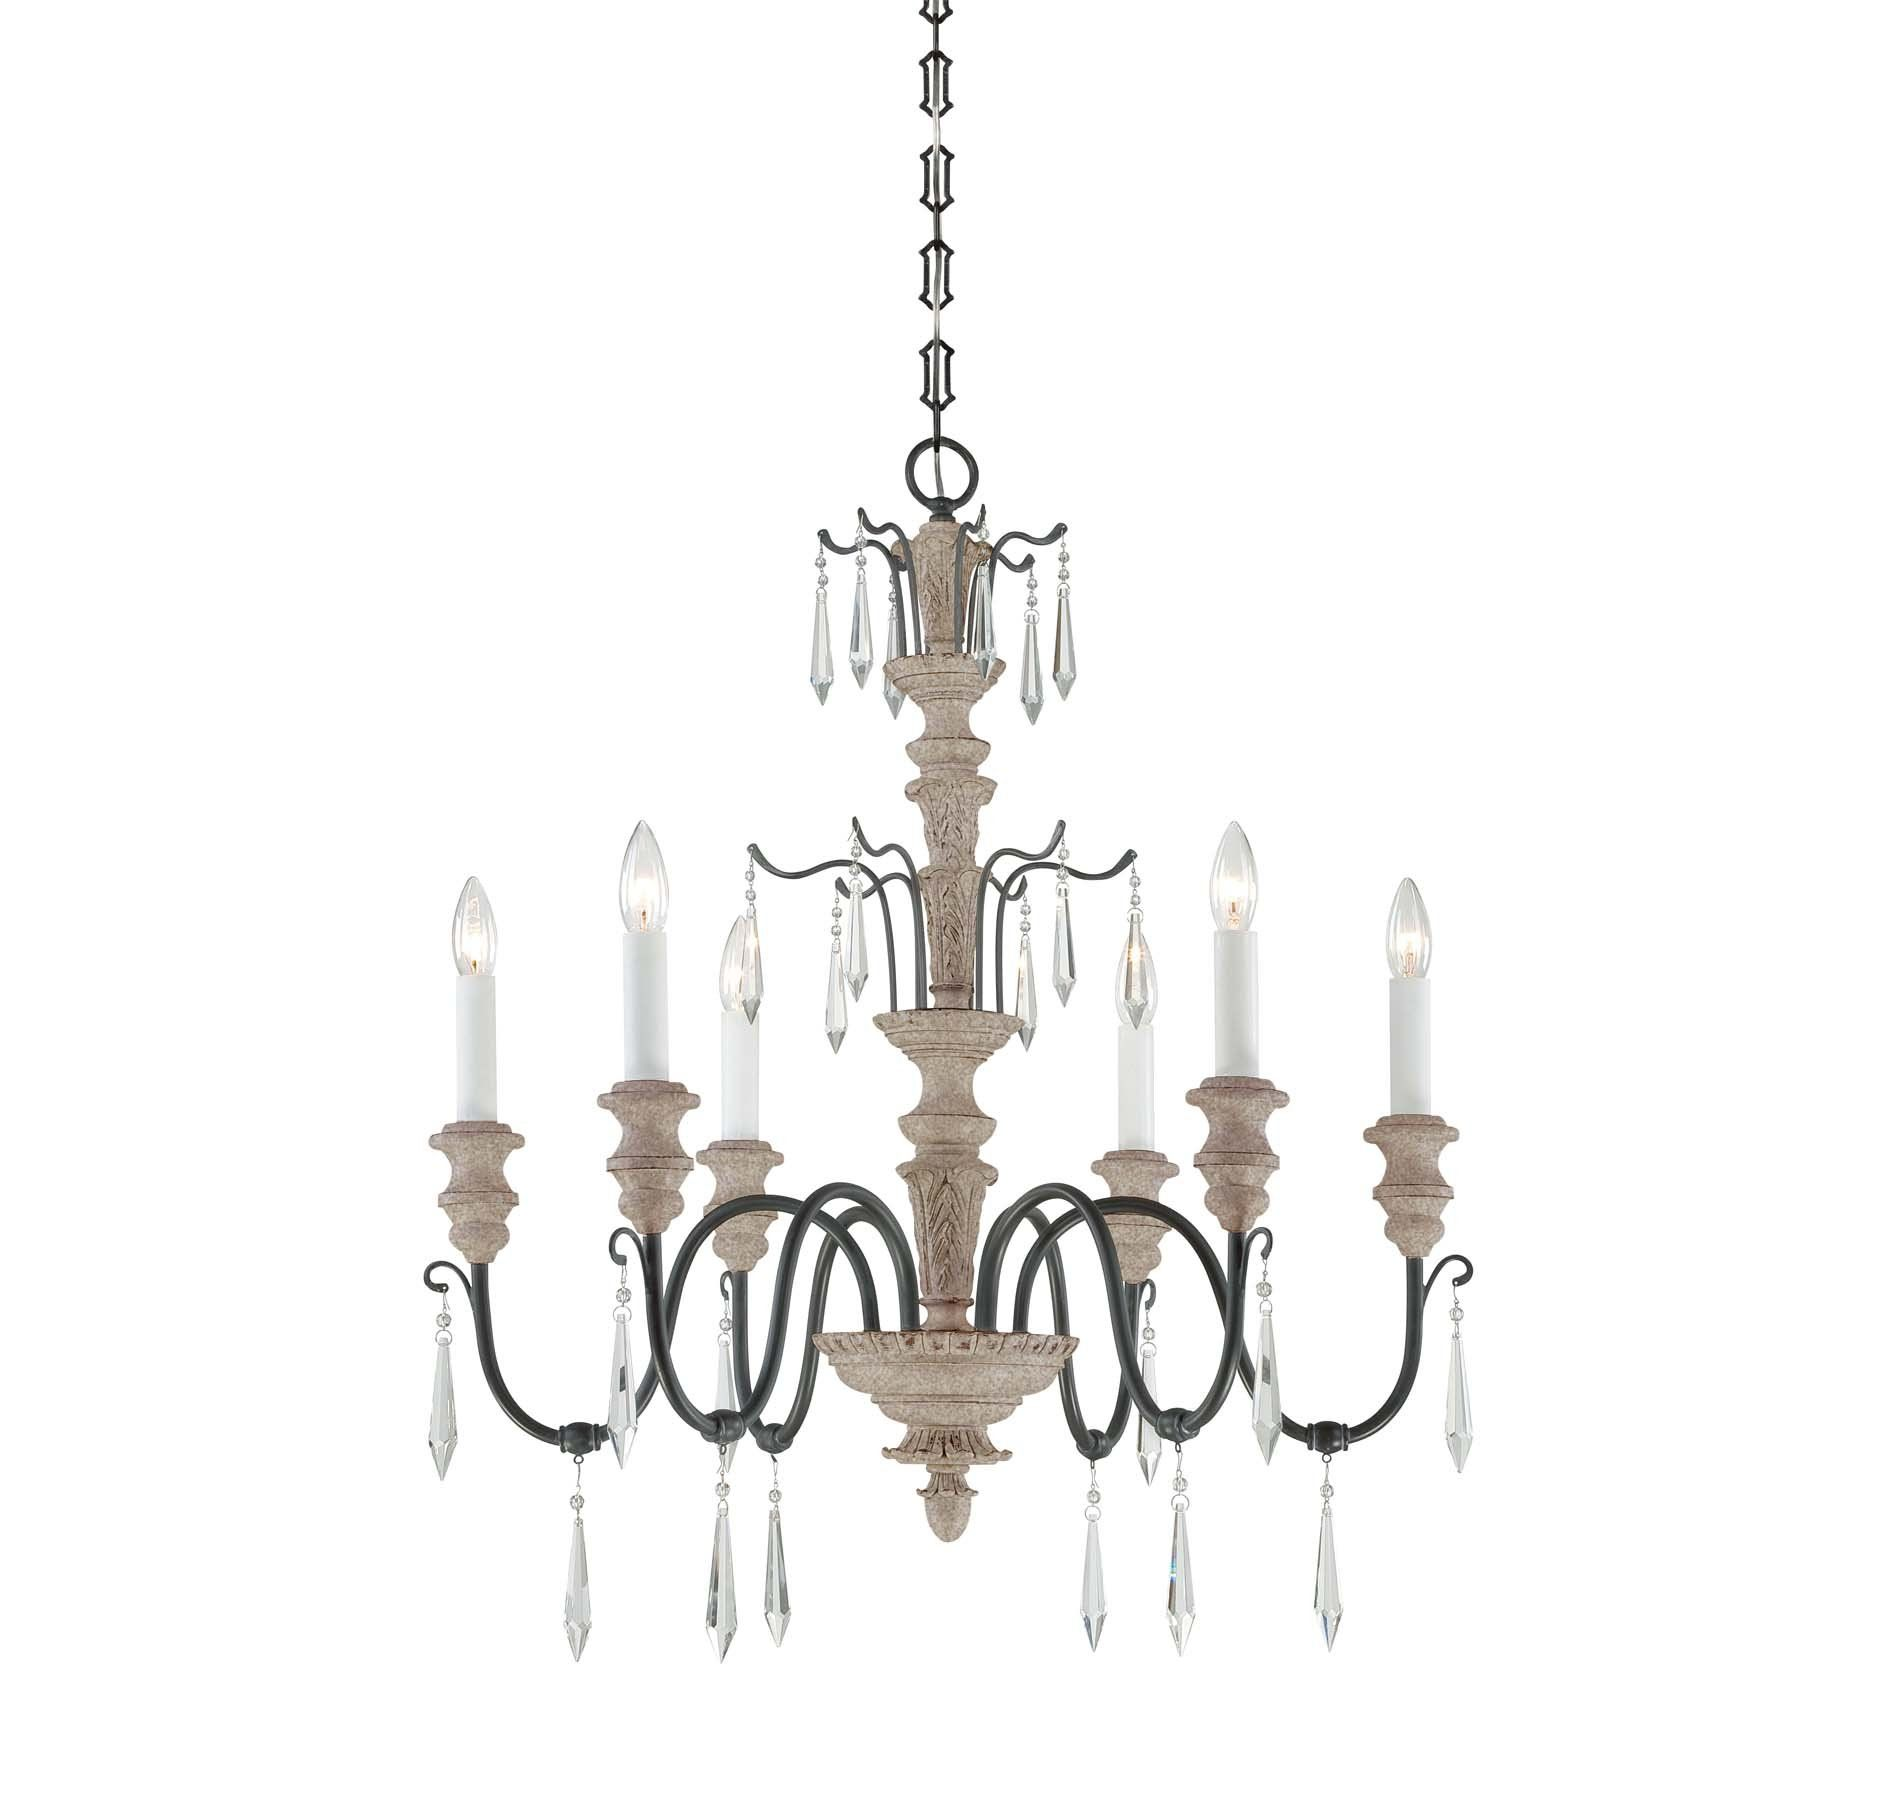 Savoy House 1 4340 6 192 Chandelier with No Shades Distressed